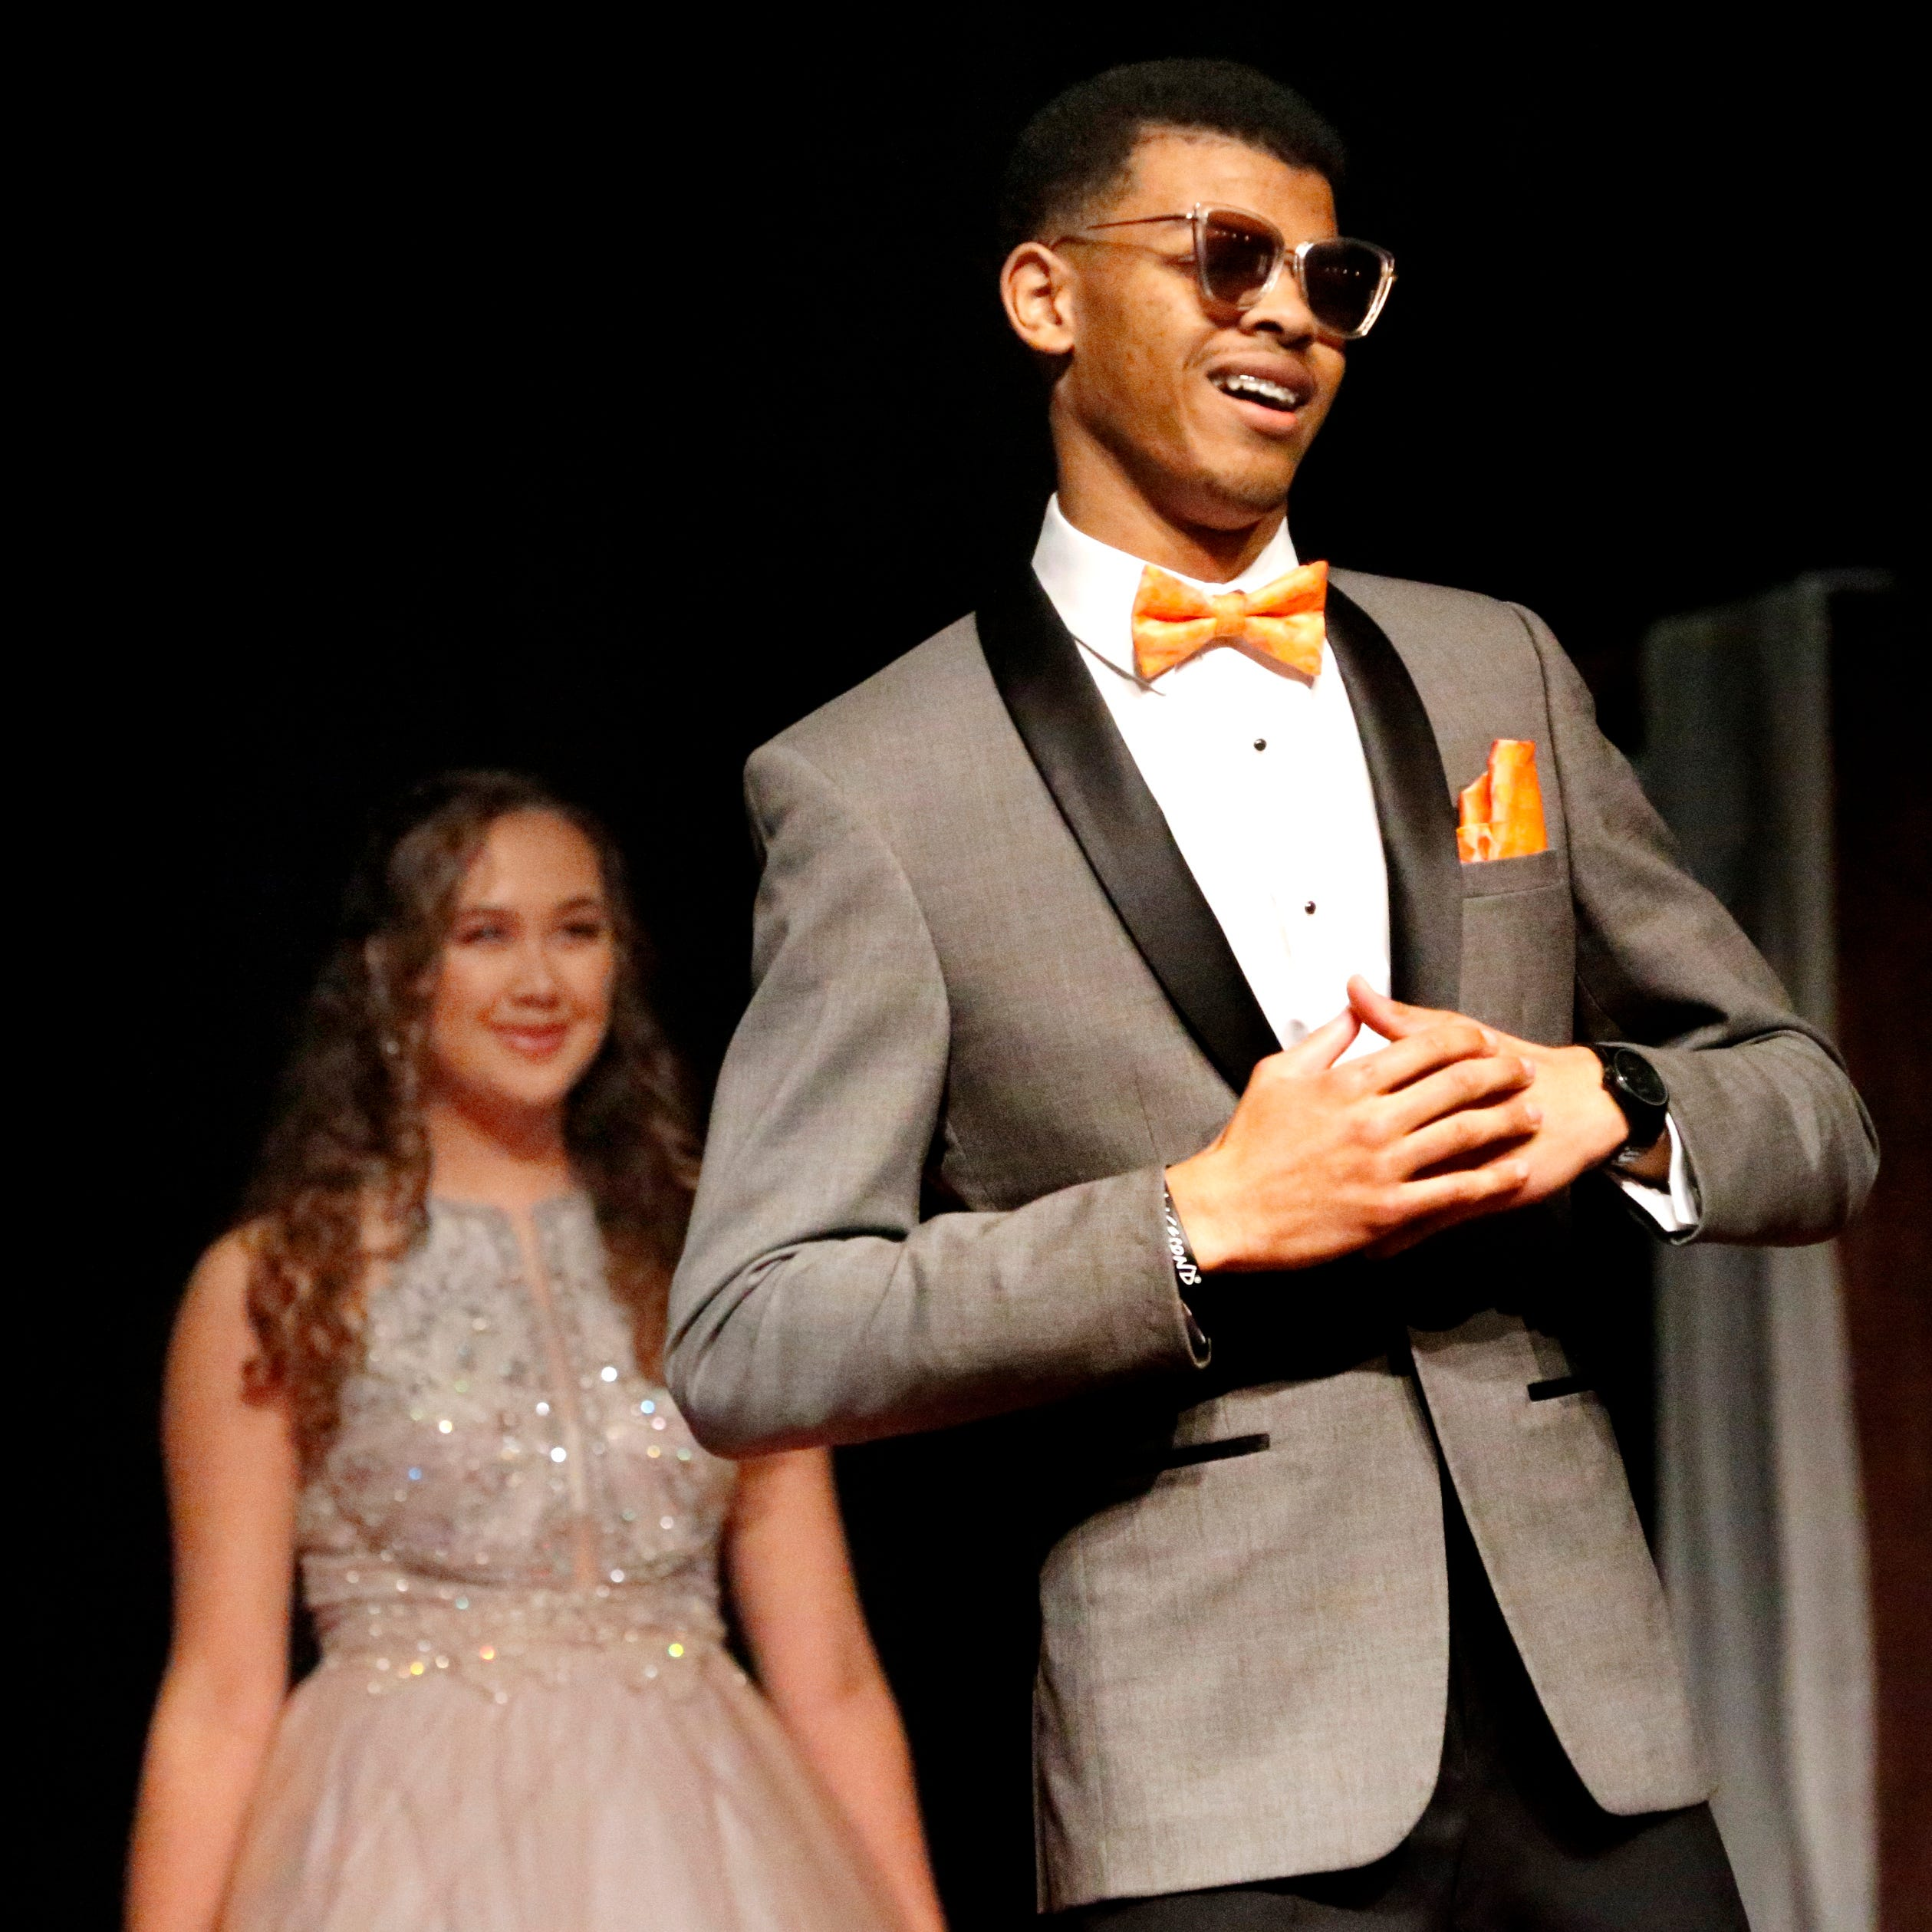 Prom season in Middle Tennessee: See the 2019 trends for dresses, tuxedos